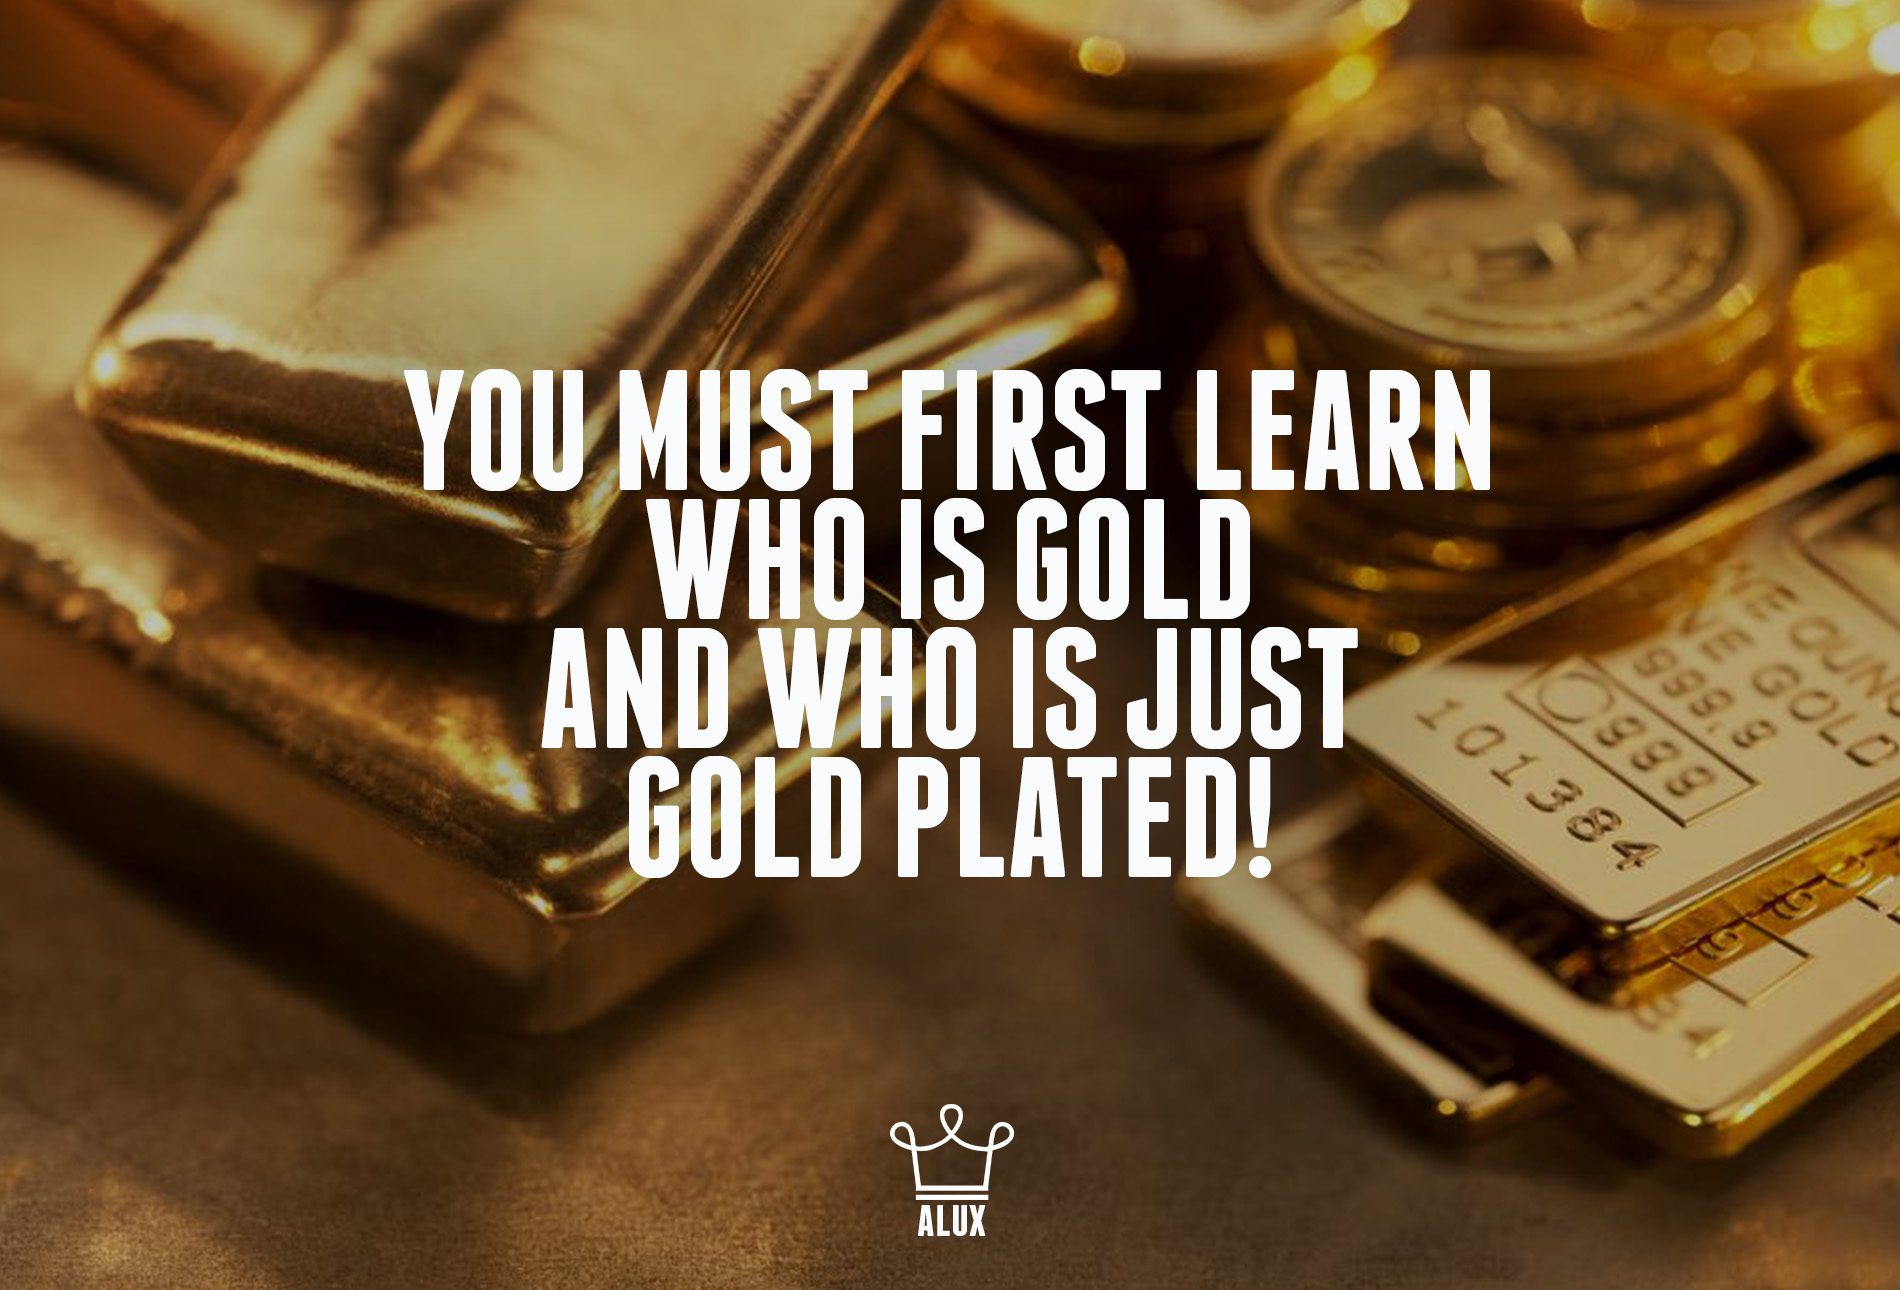 you must first learn who is gold and who is gold plated quote alux